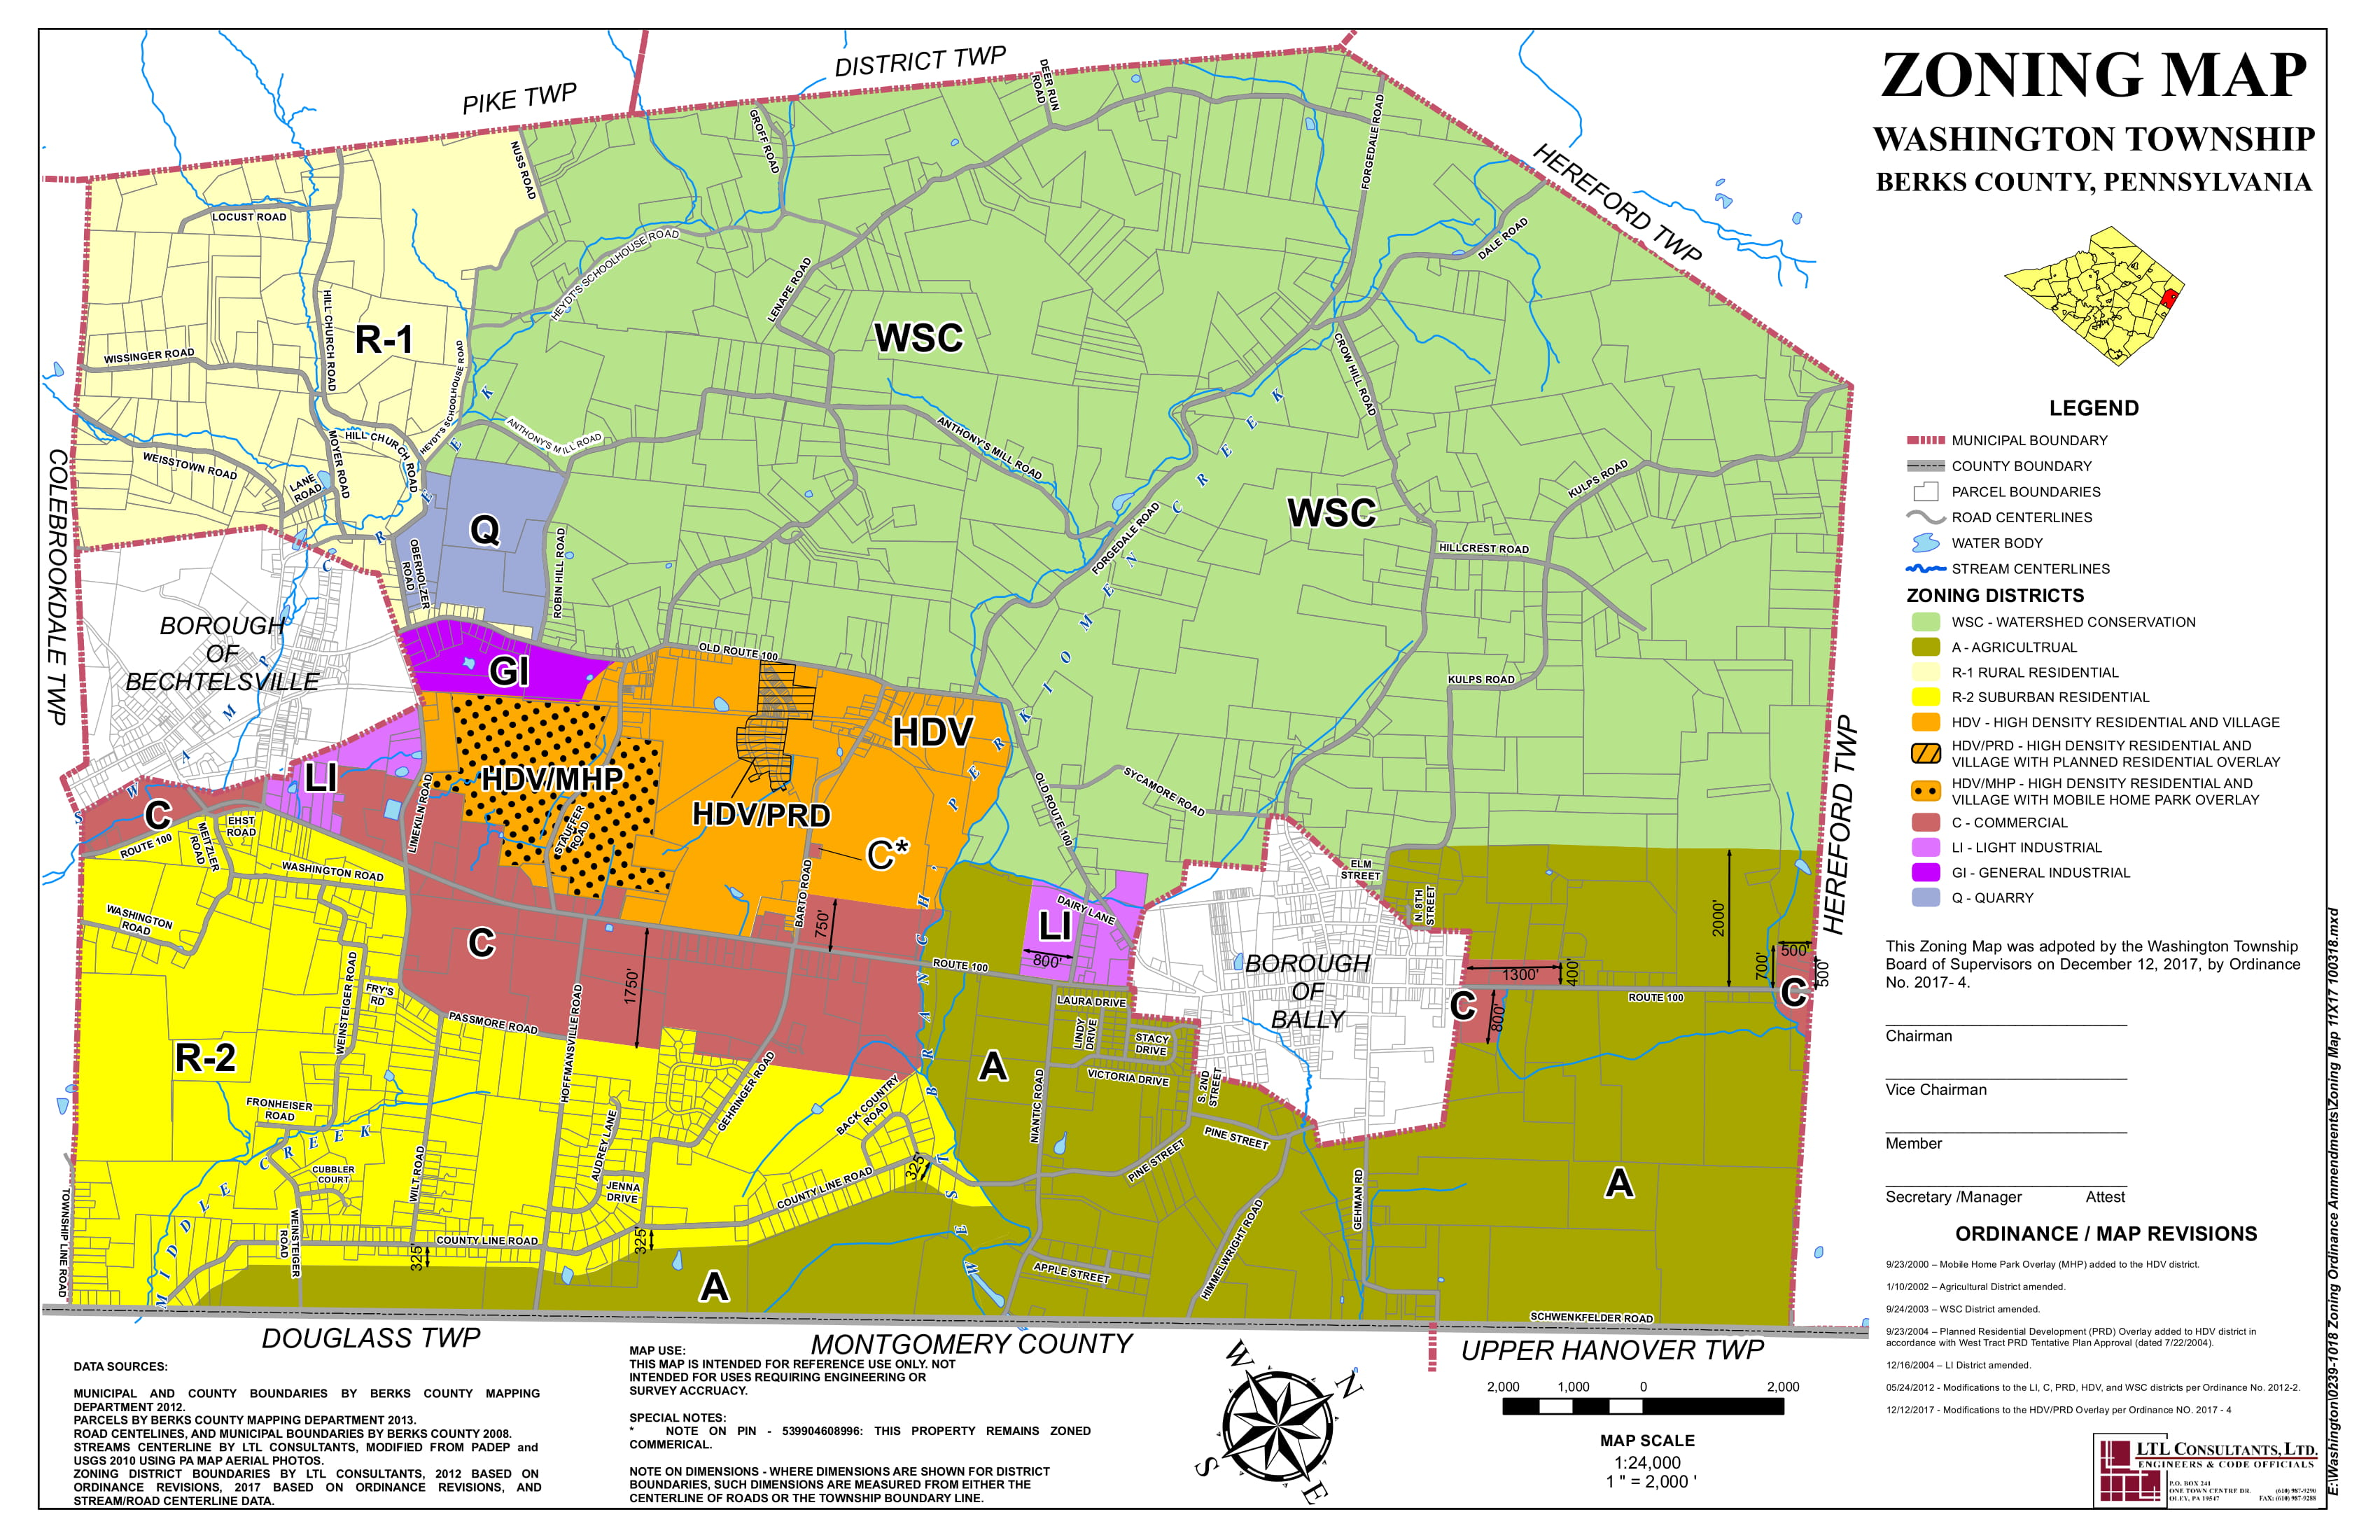 Zoning Map - Washington Township on floodplain map of pa, street map of pa, address map of pa, topo map of pa, agriculture map of pa, public land map of pa, precinct map of pa, employment map of pa, construction map of pa, land use map of pa,